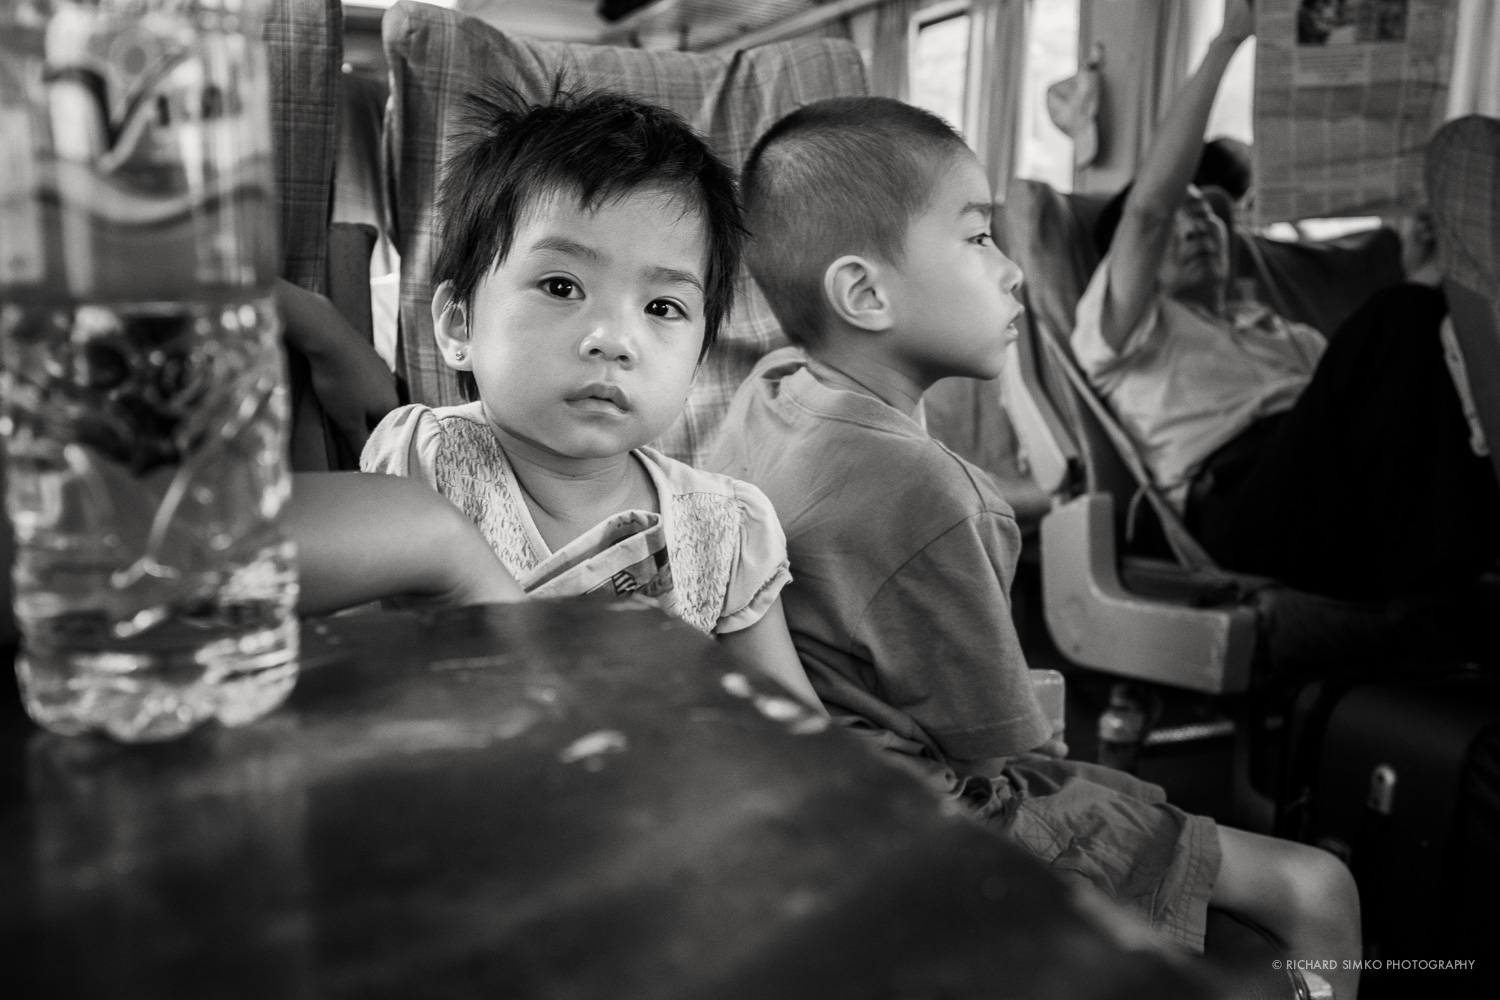 On the train to Hue